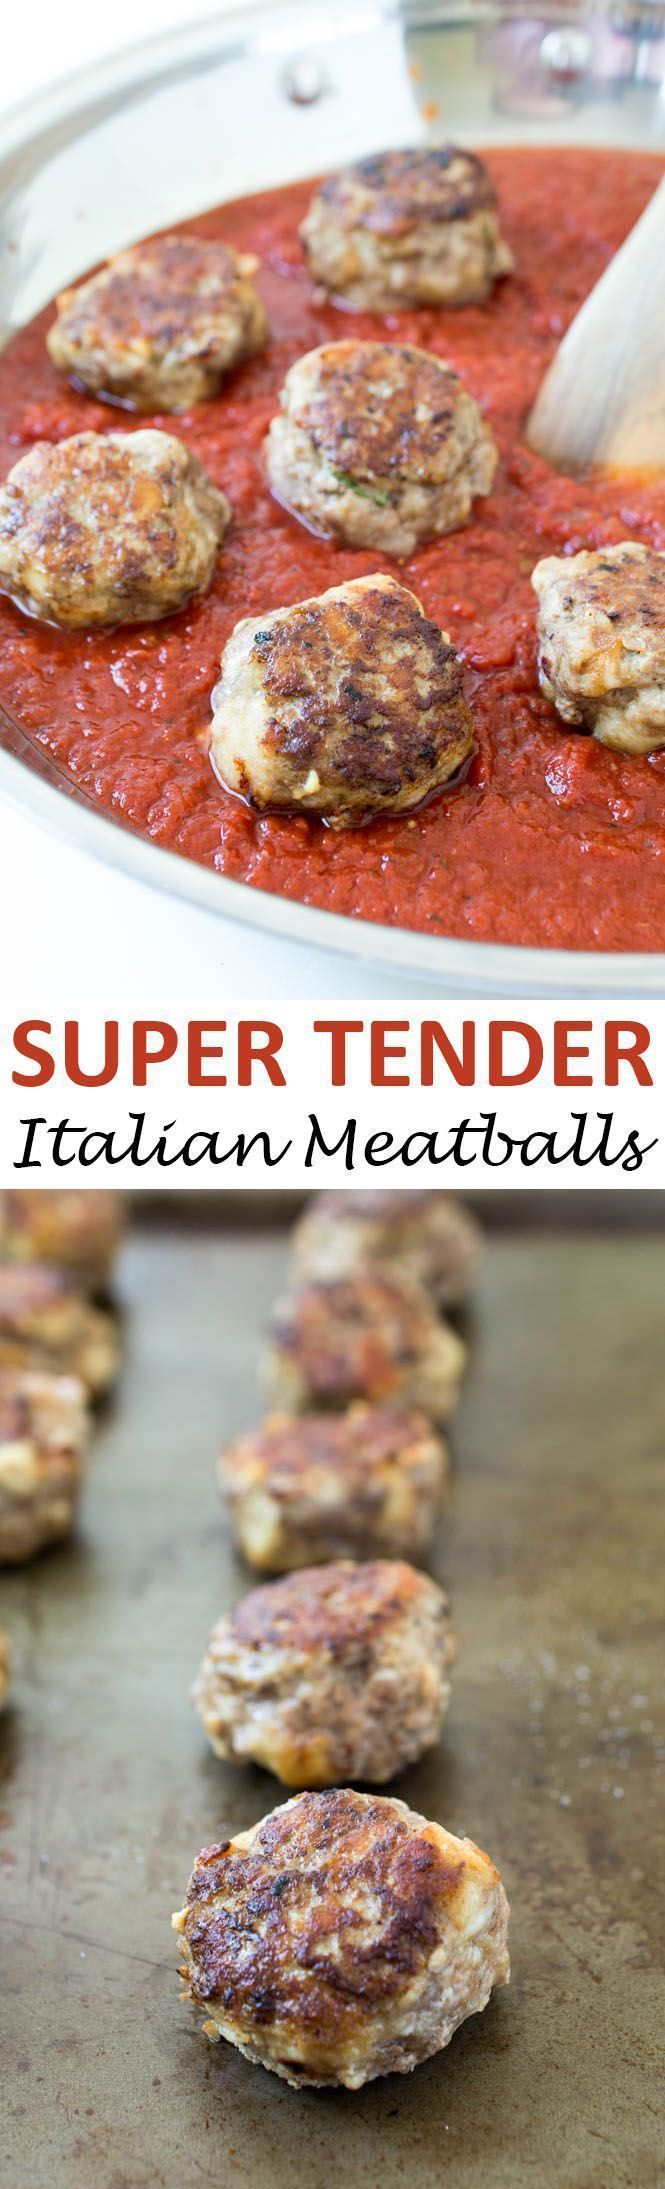 Super Tender Italian Meatballs with Parmesan Cheese, Parsley and Garlic